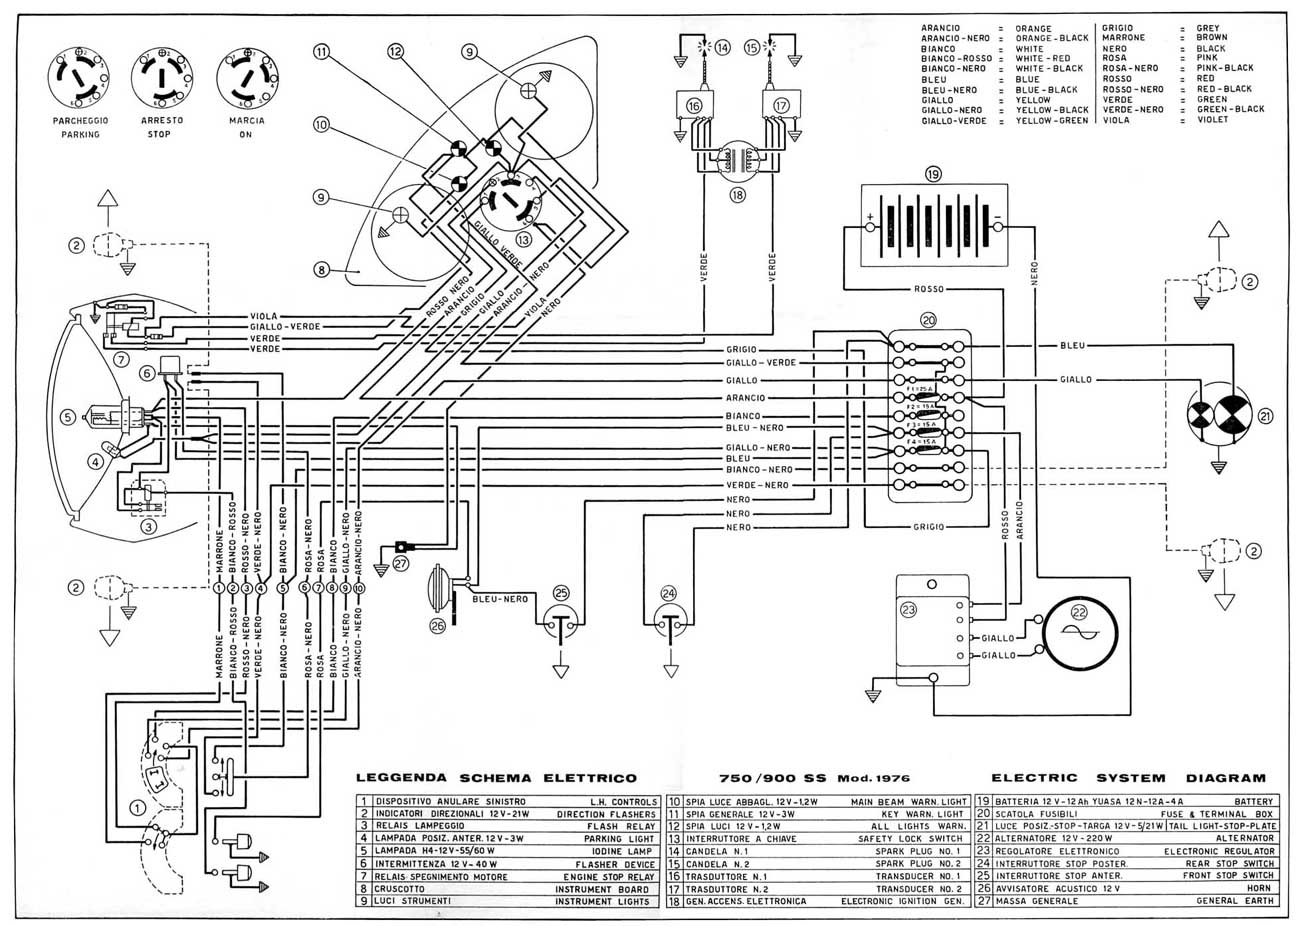 ducati 999 wiring diagram voltage regulator ducati 900ss wiring diagram